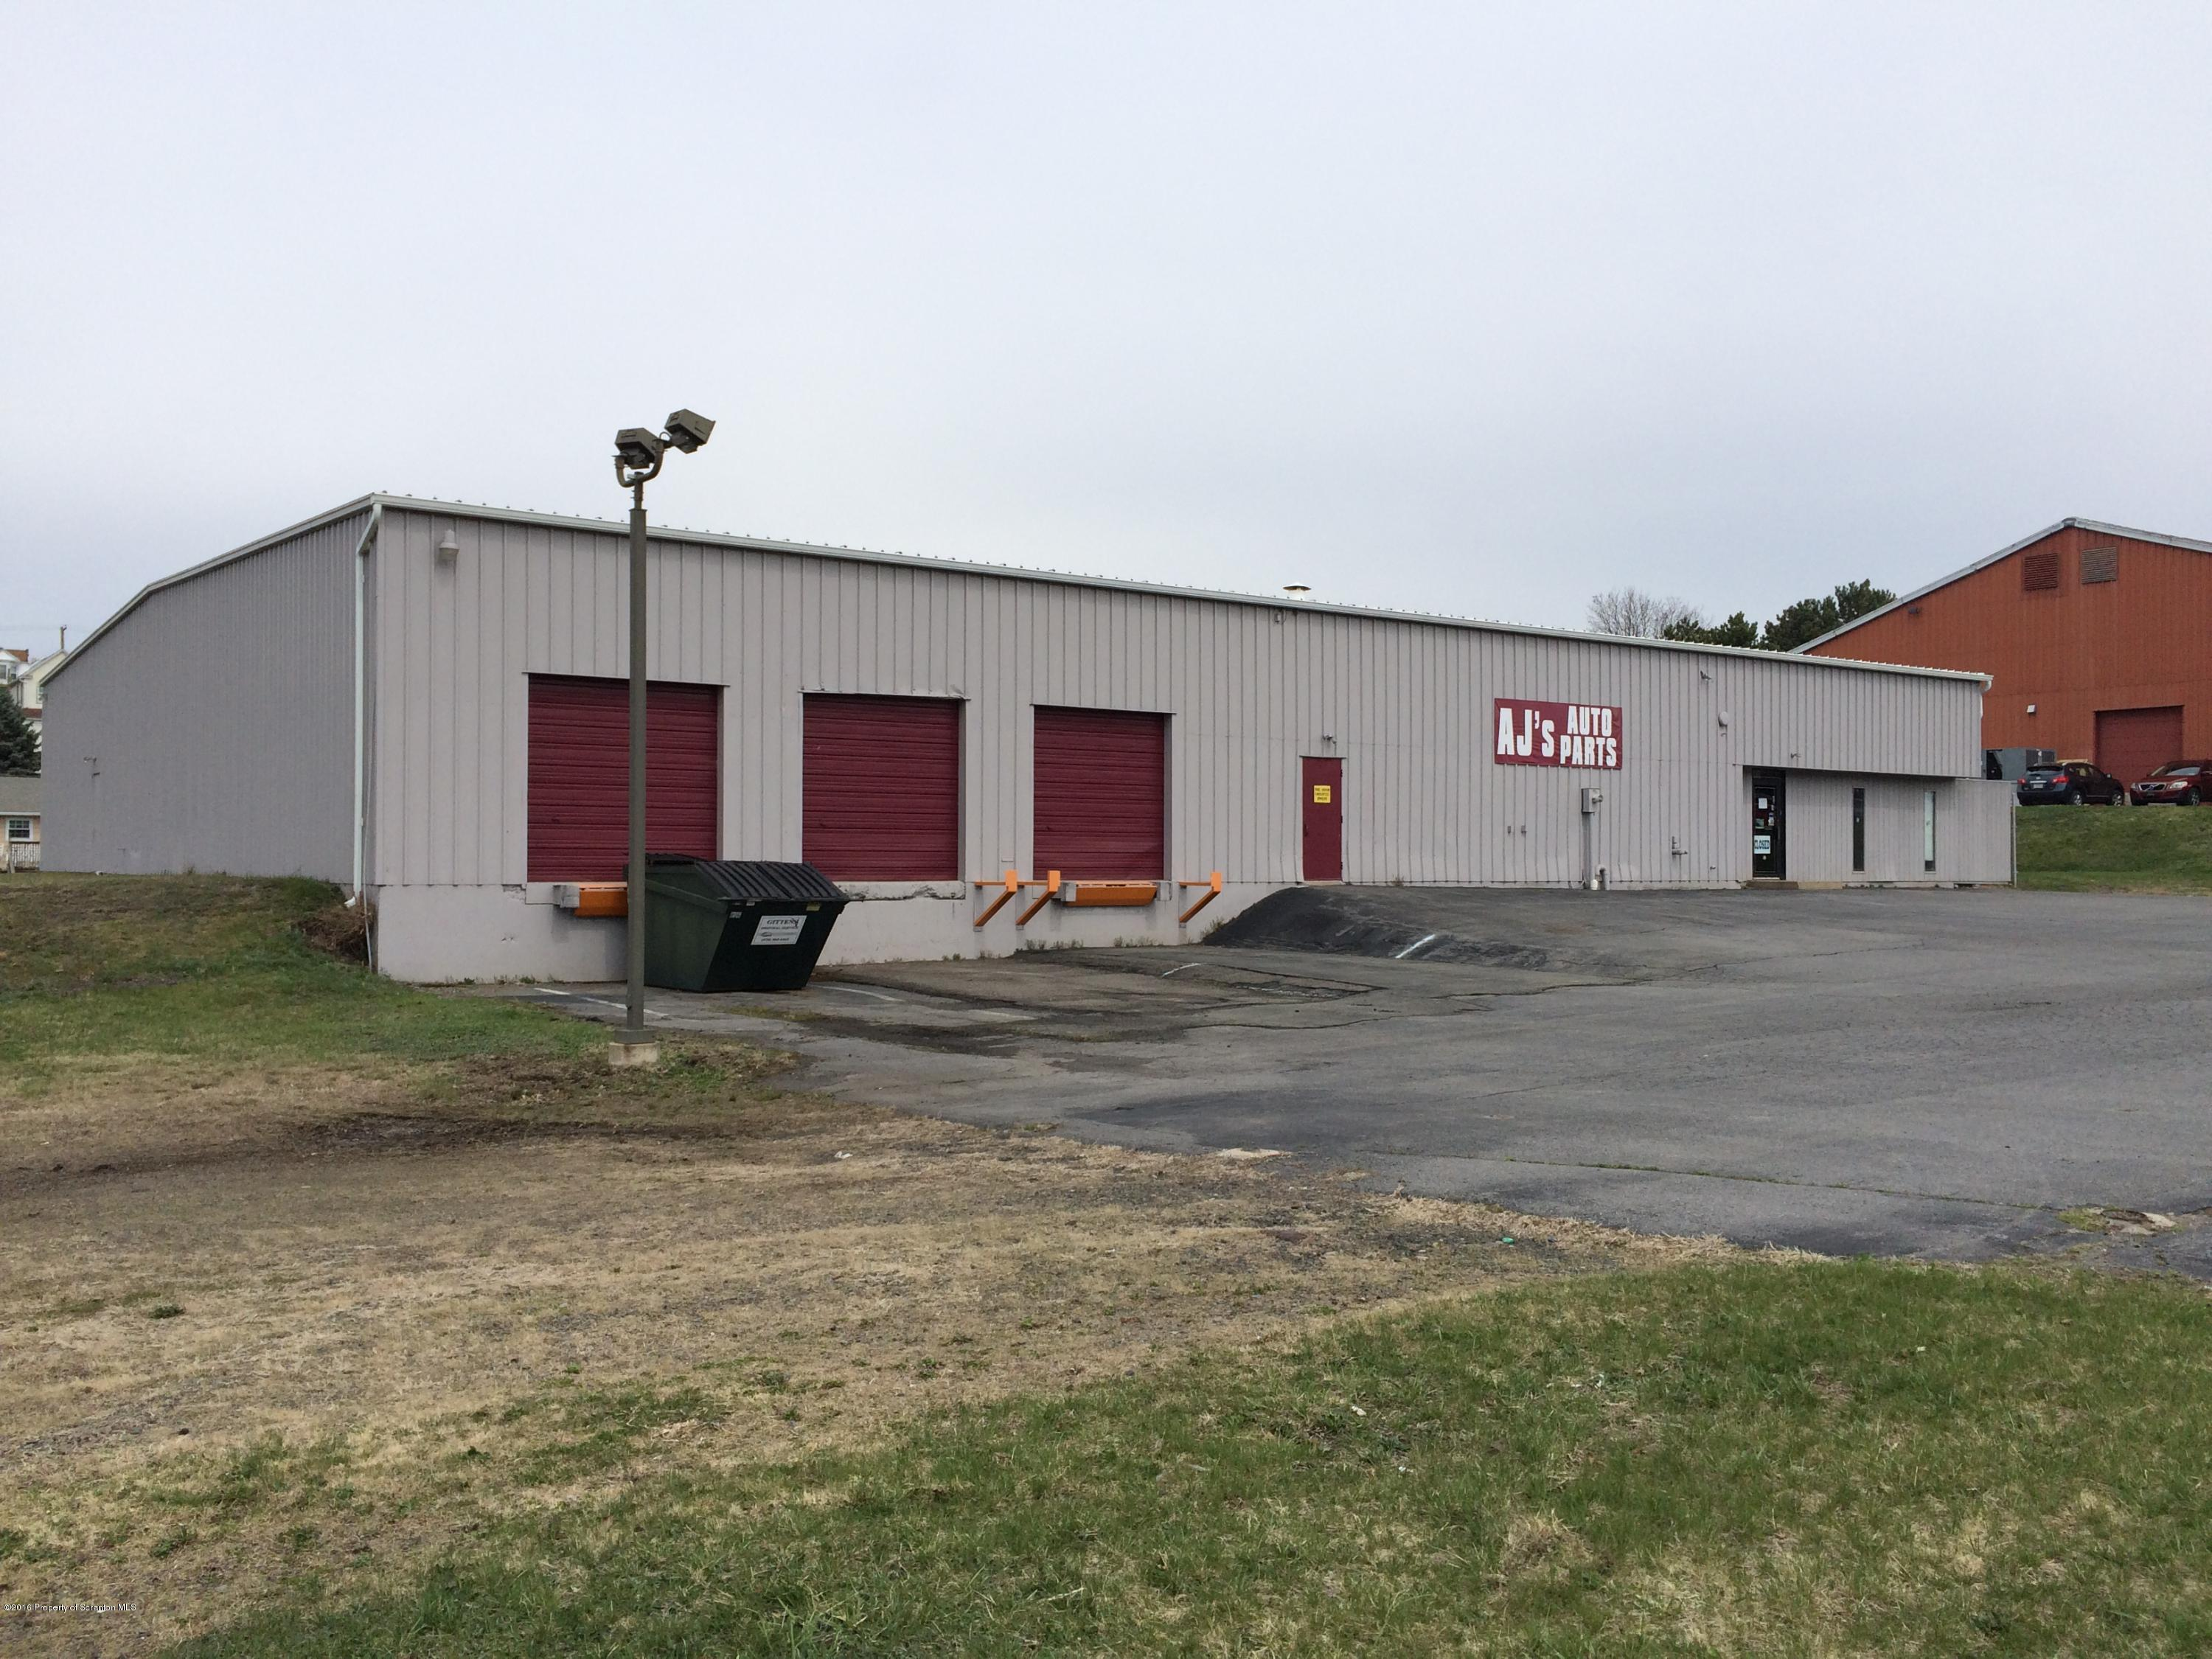 40 J CAMPBELL COLLINS Drive, Wilkes-Barre, Pennsylvania 18702, ,2 BathroomsBathrooms,Commercial,For Lease,J CAMPBELL COLLINS,16-4054